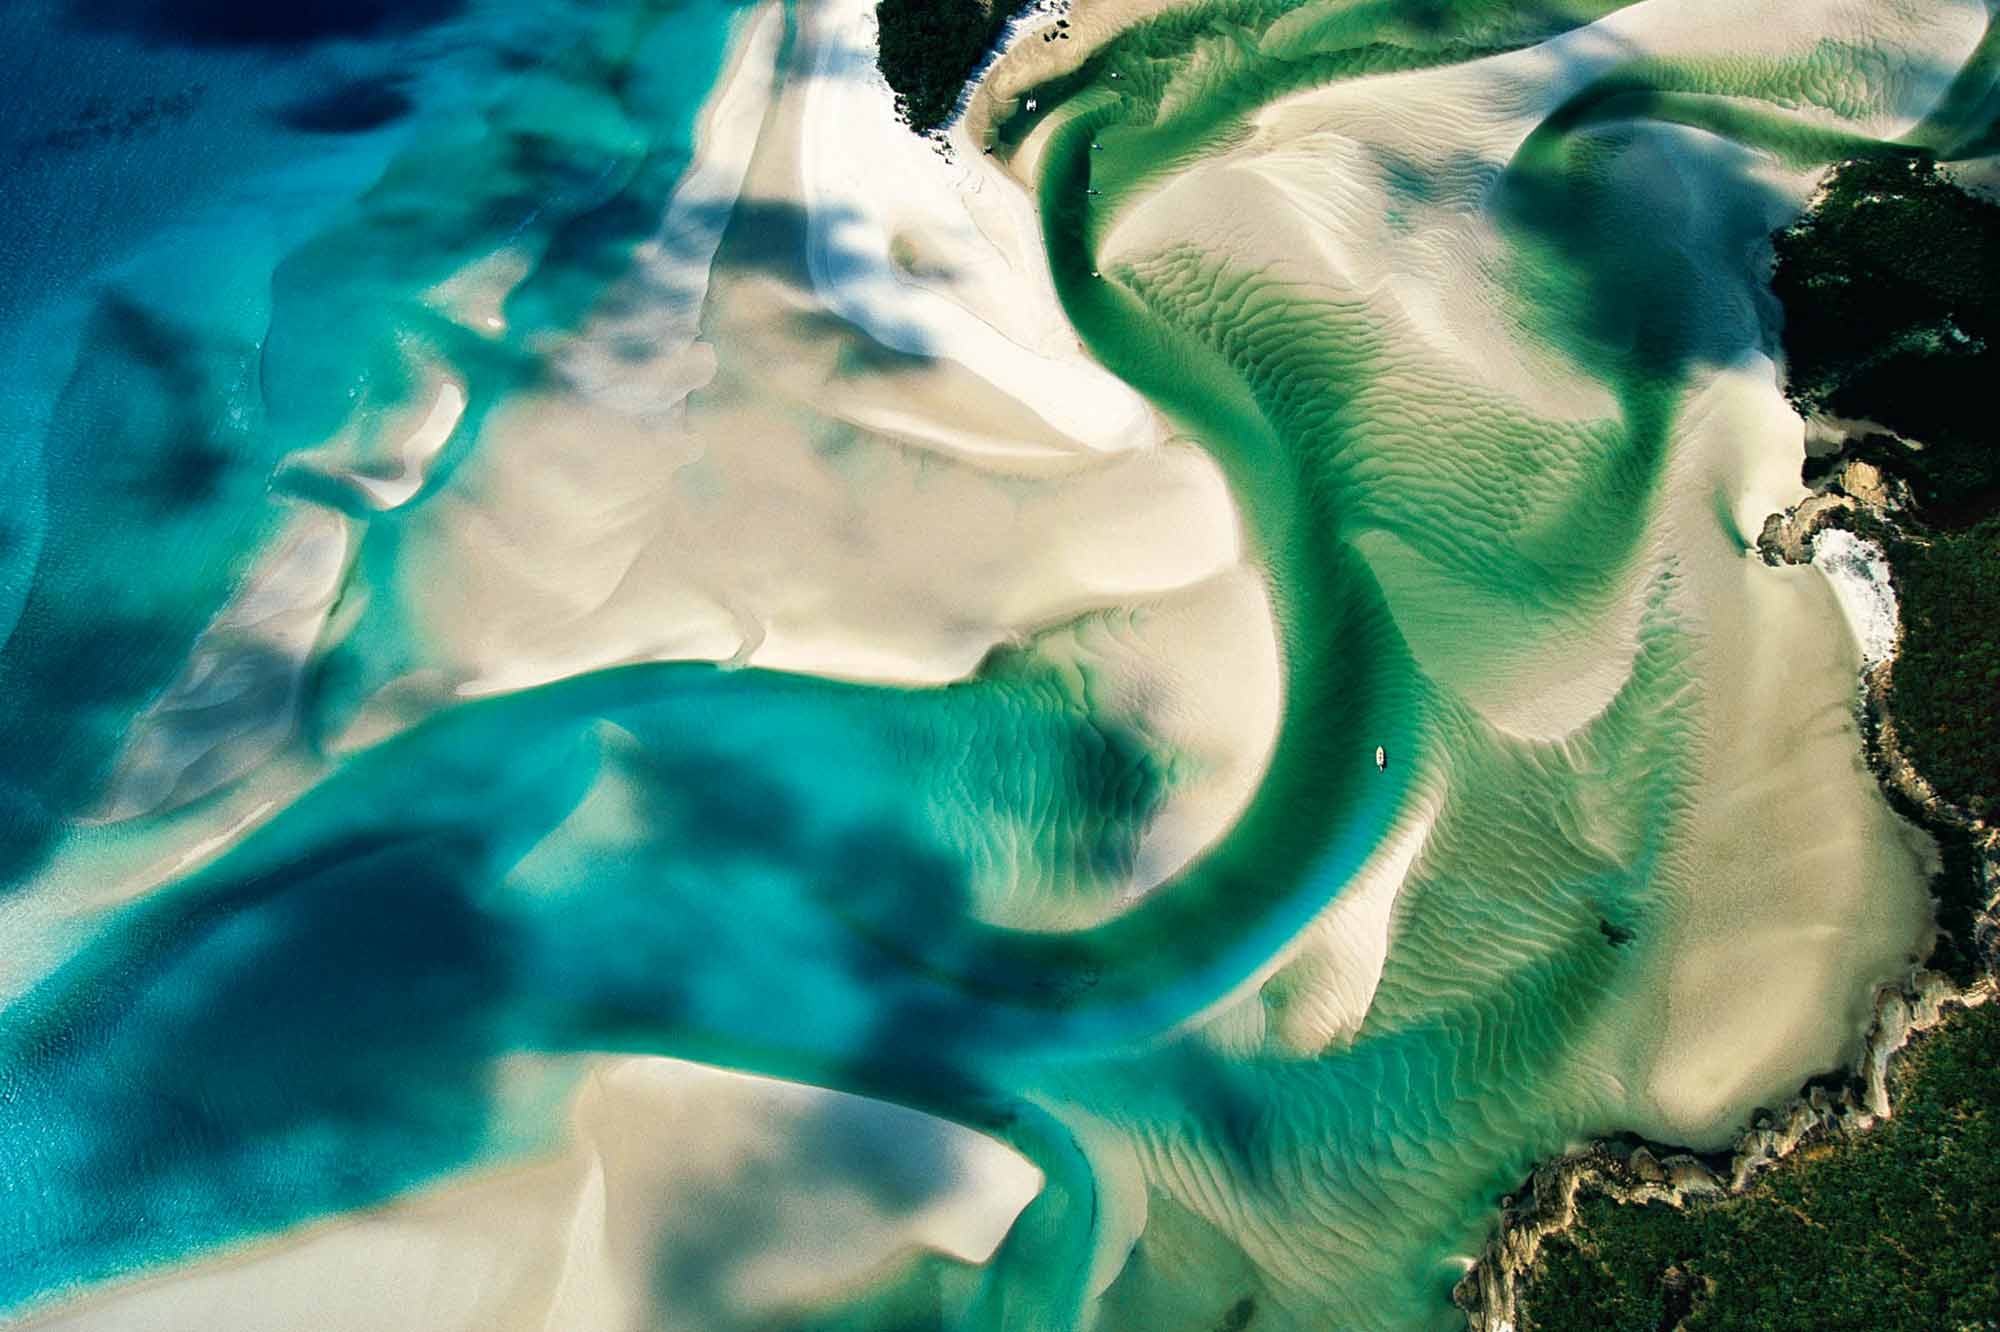 Queensland - Yann Arthus-Bertrand